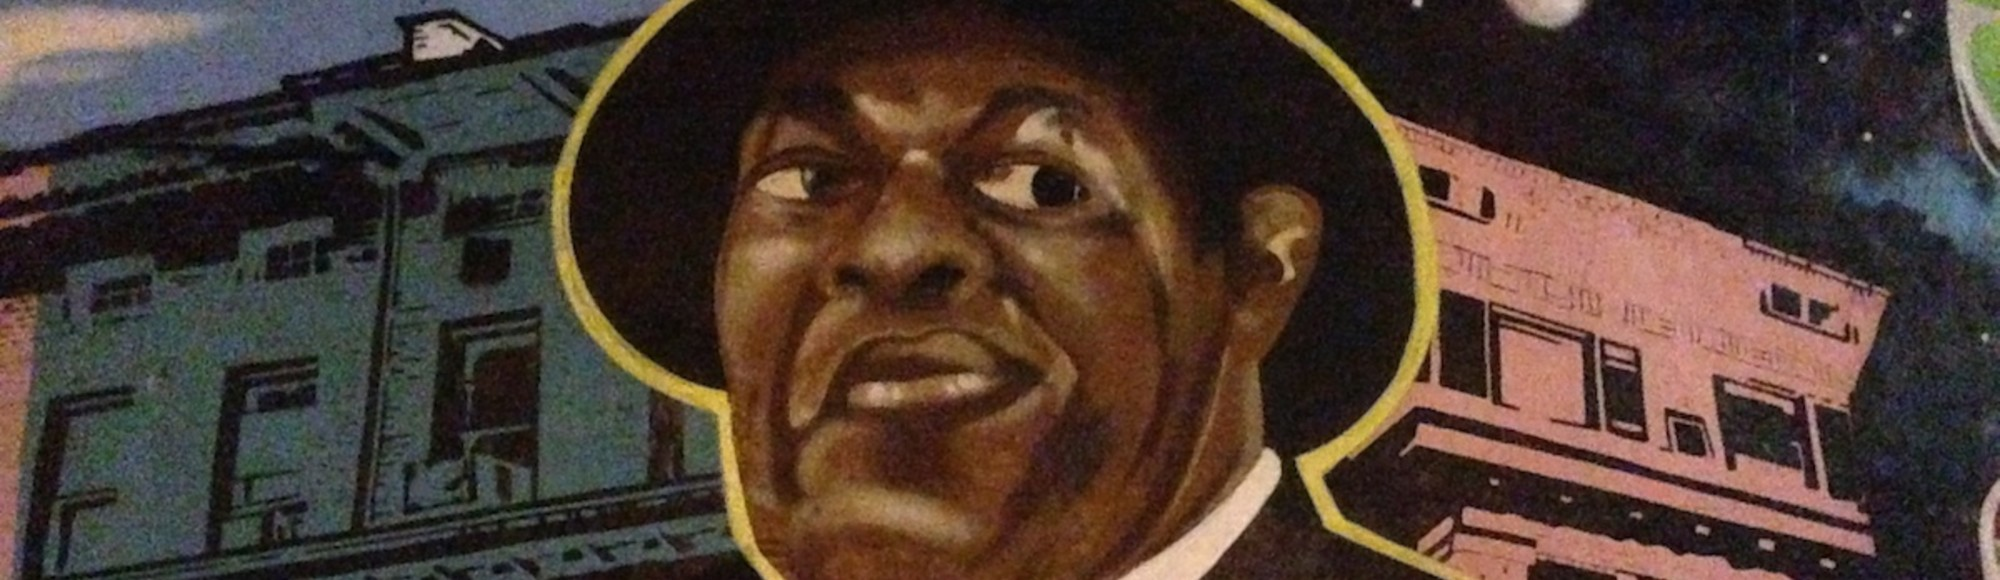 A new Marion Barry mural on